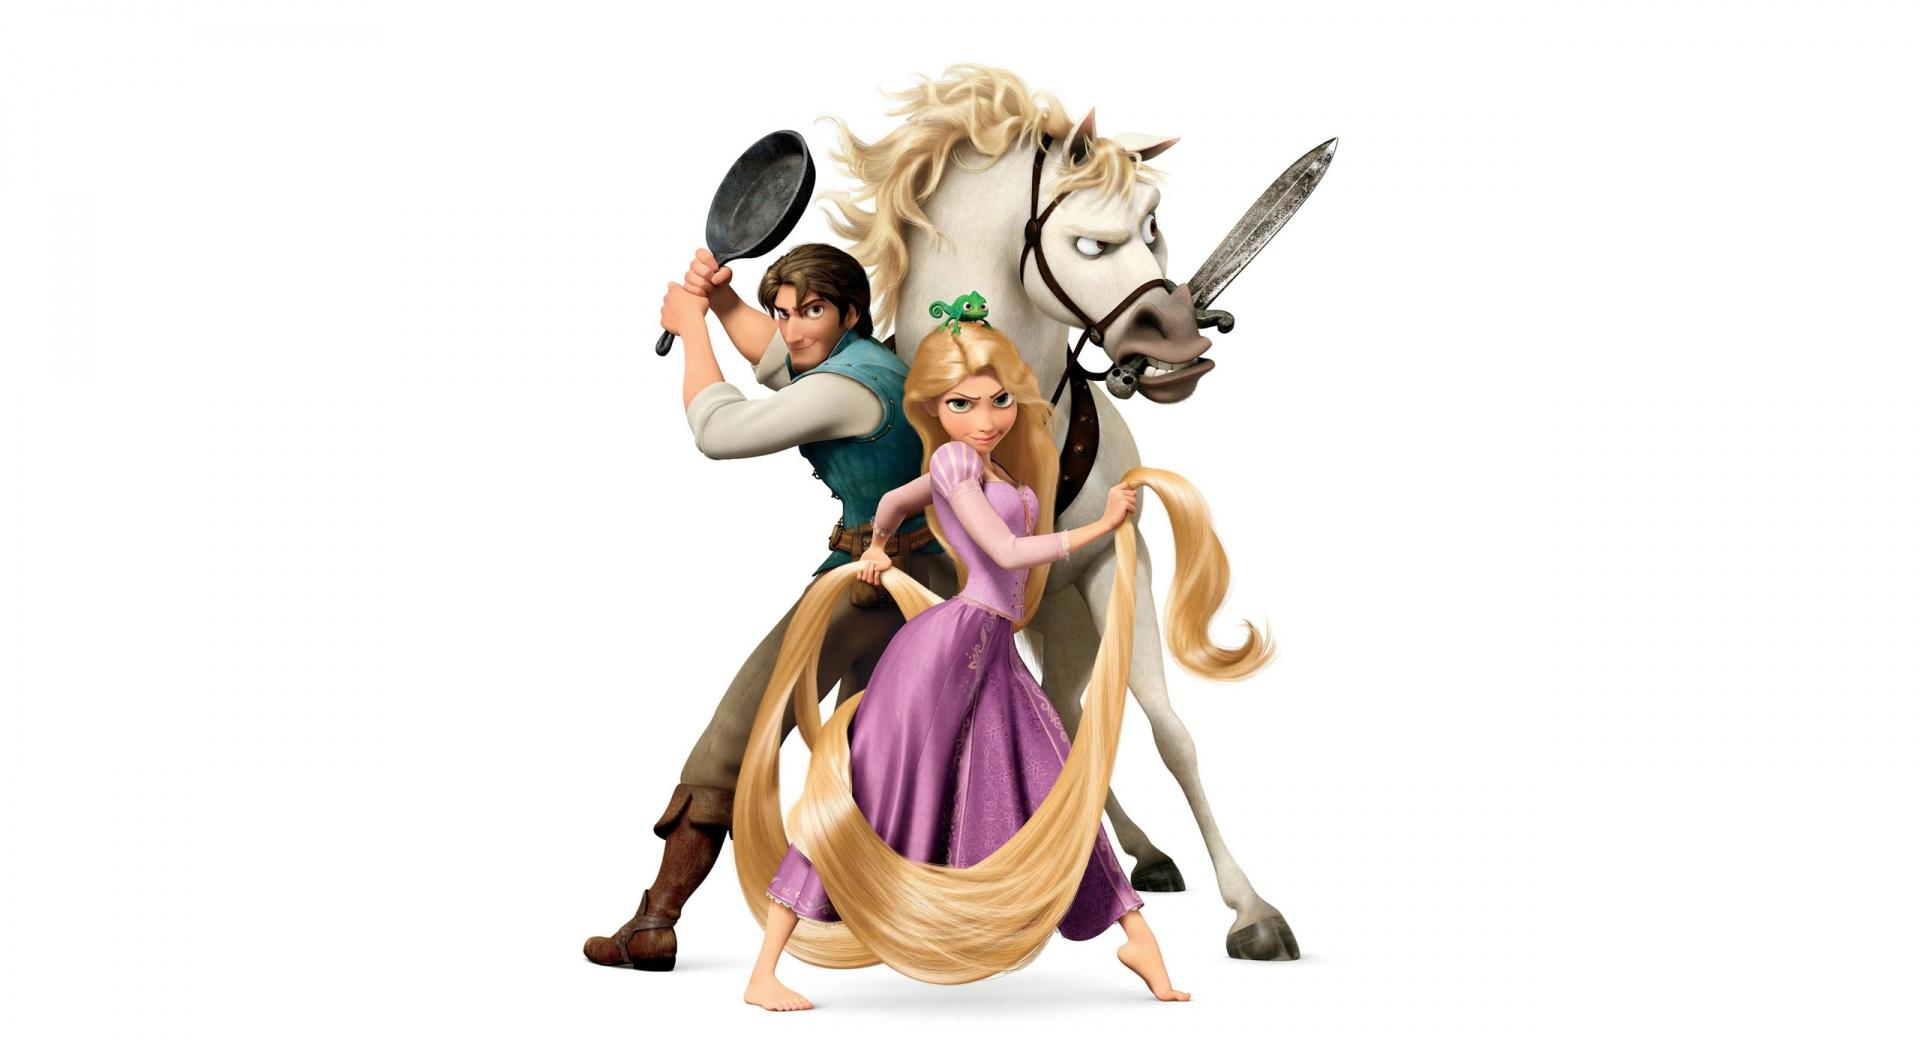 Tangled Disney  Rapunzel And Flynn Ryder wallpapers HD quality